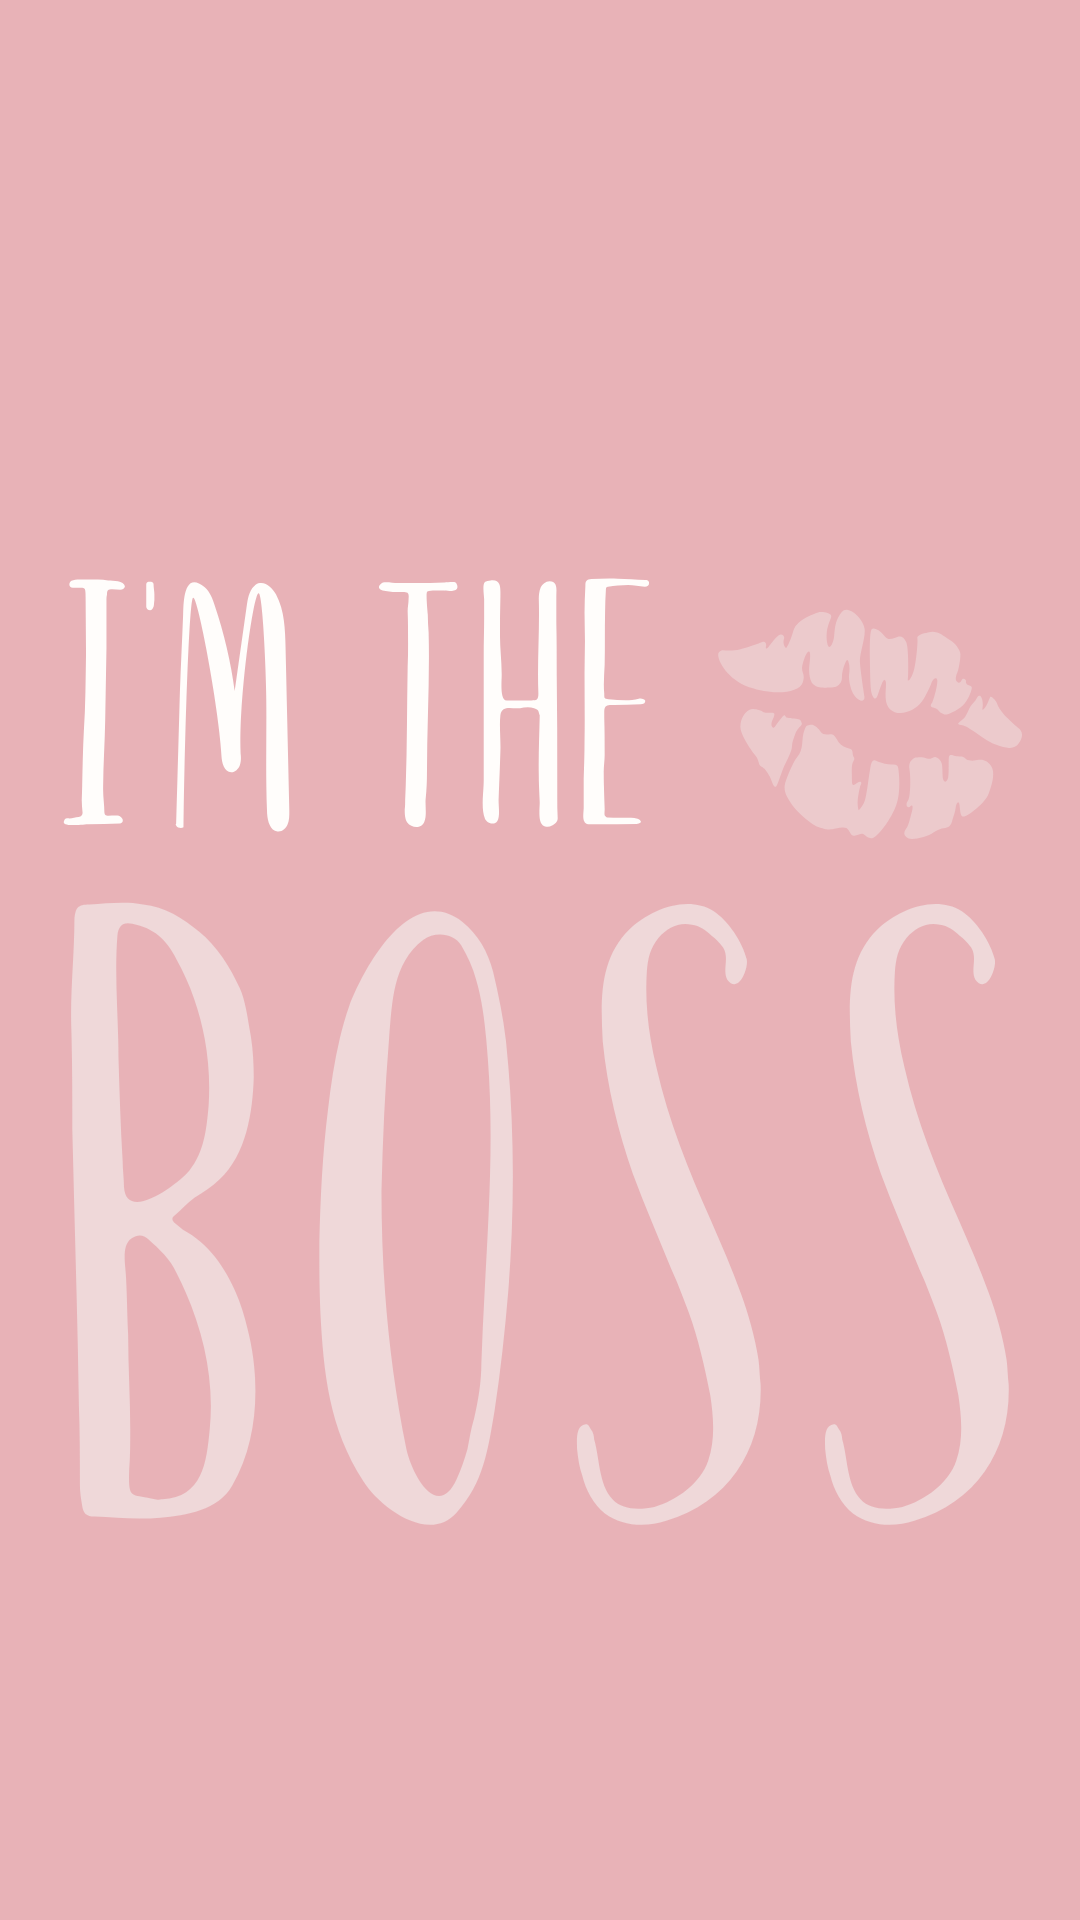 Pink Aesthetic Wallpaper And Instagram Story I M The Boss Girl Boss Wallpaper Pink Aesthetic Boss Wallpaper